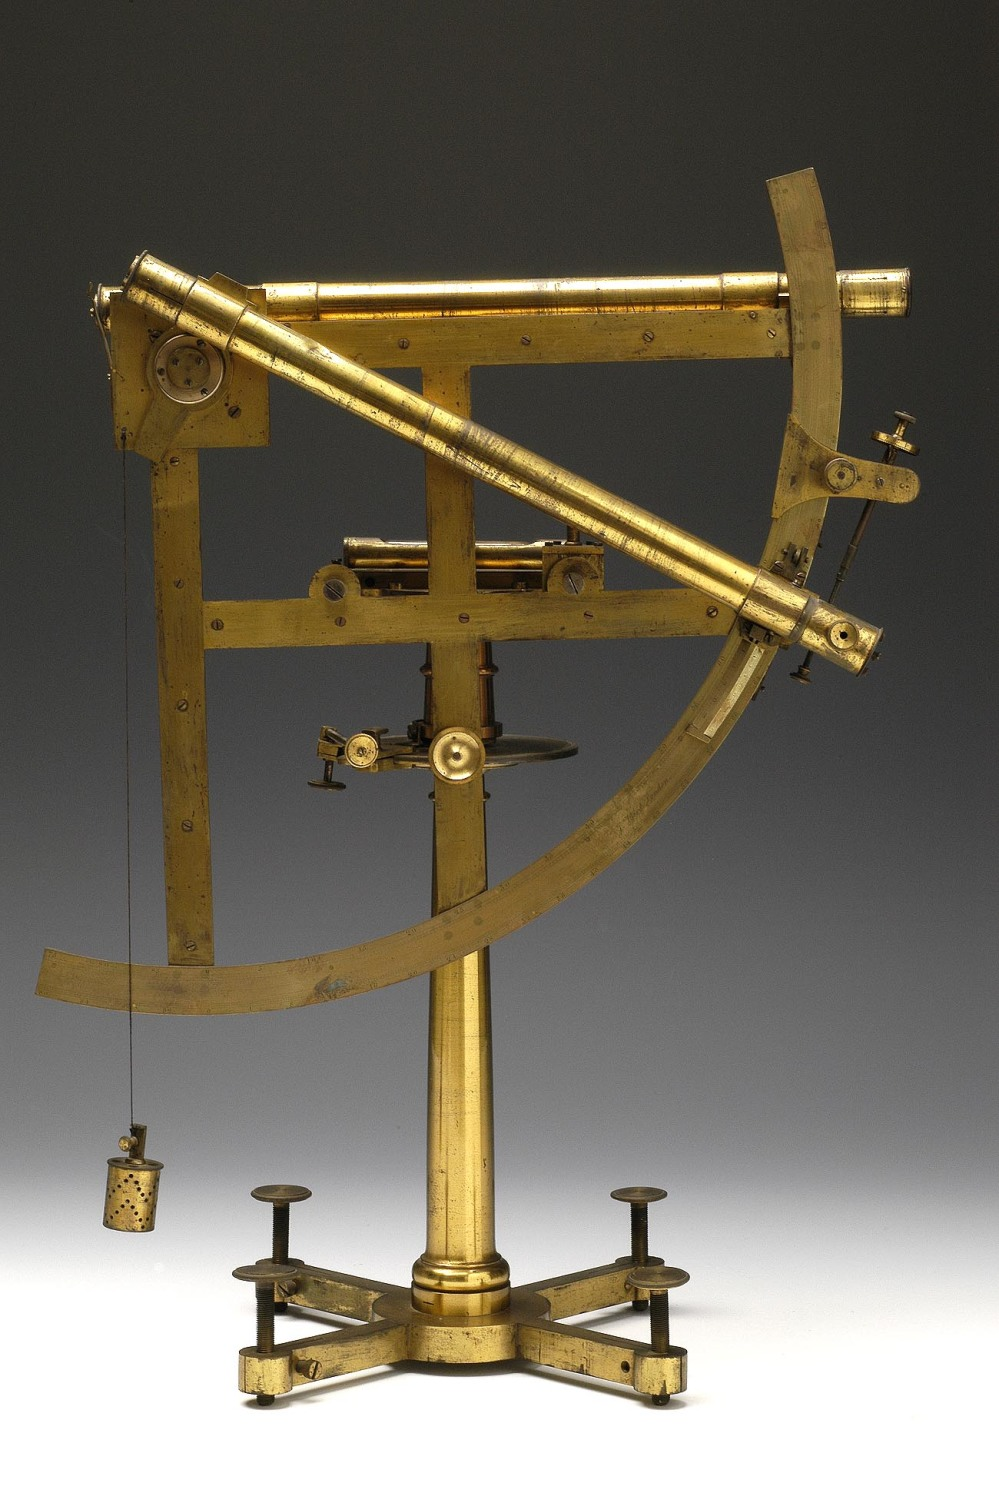 preview image for Pillar-Mounted Astronomical Quadrant, by John Bird, London, c. 1760